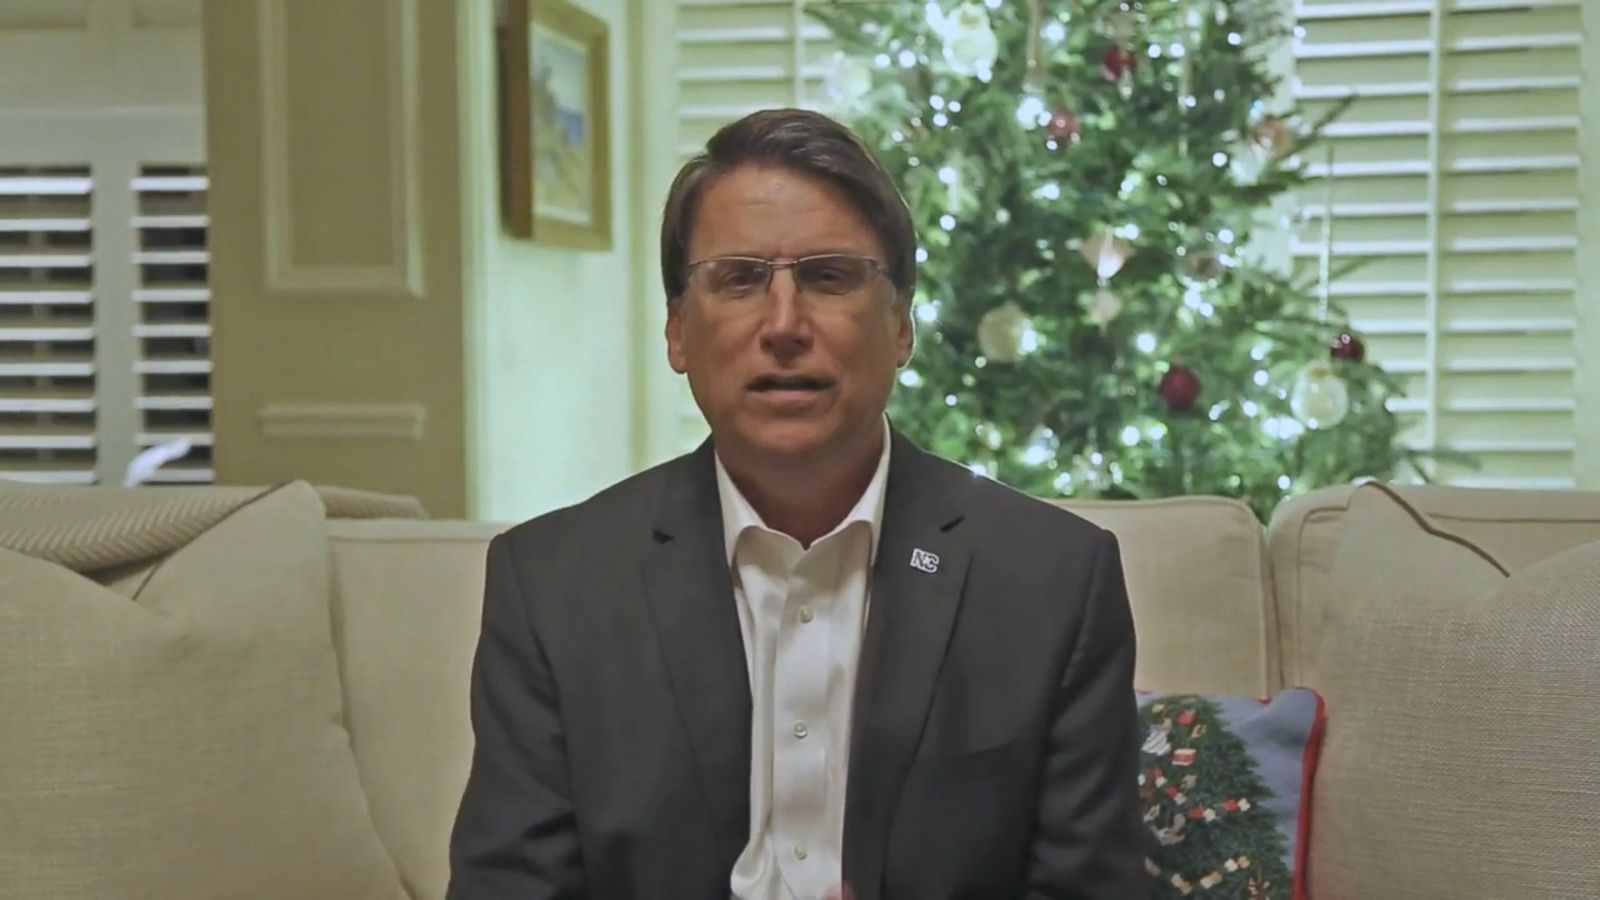 VIDEO: Weeks after Election Day and after requesting a recount, incumbent Republican Gov. Pat McCrory conceded the North Carolina gubernatorial race to his Democratic challenger, Roy Cooper.